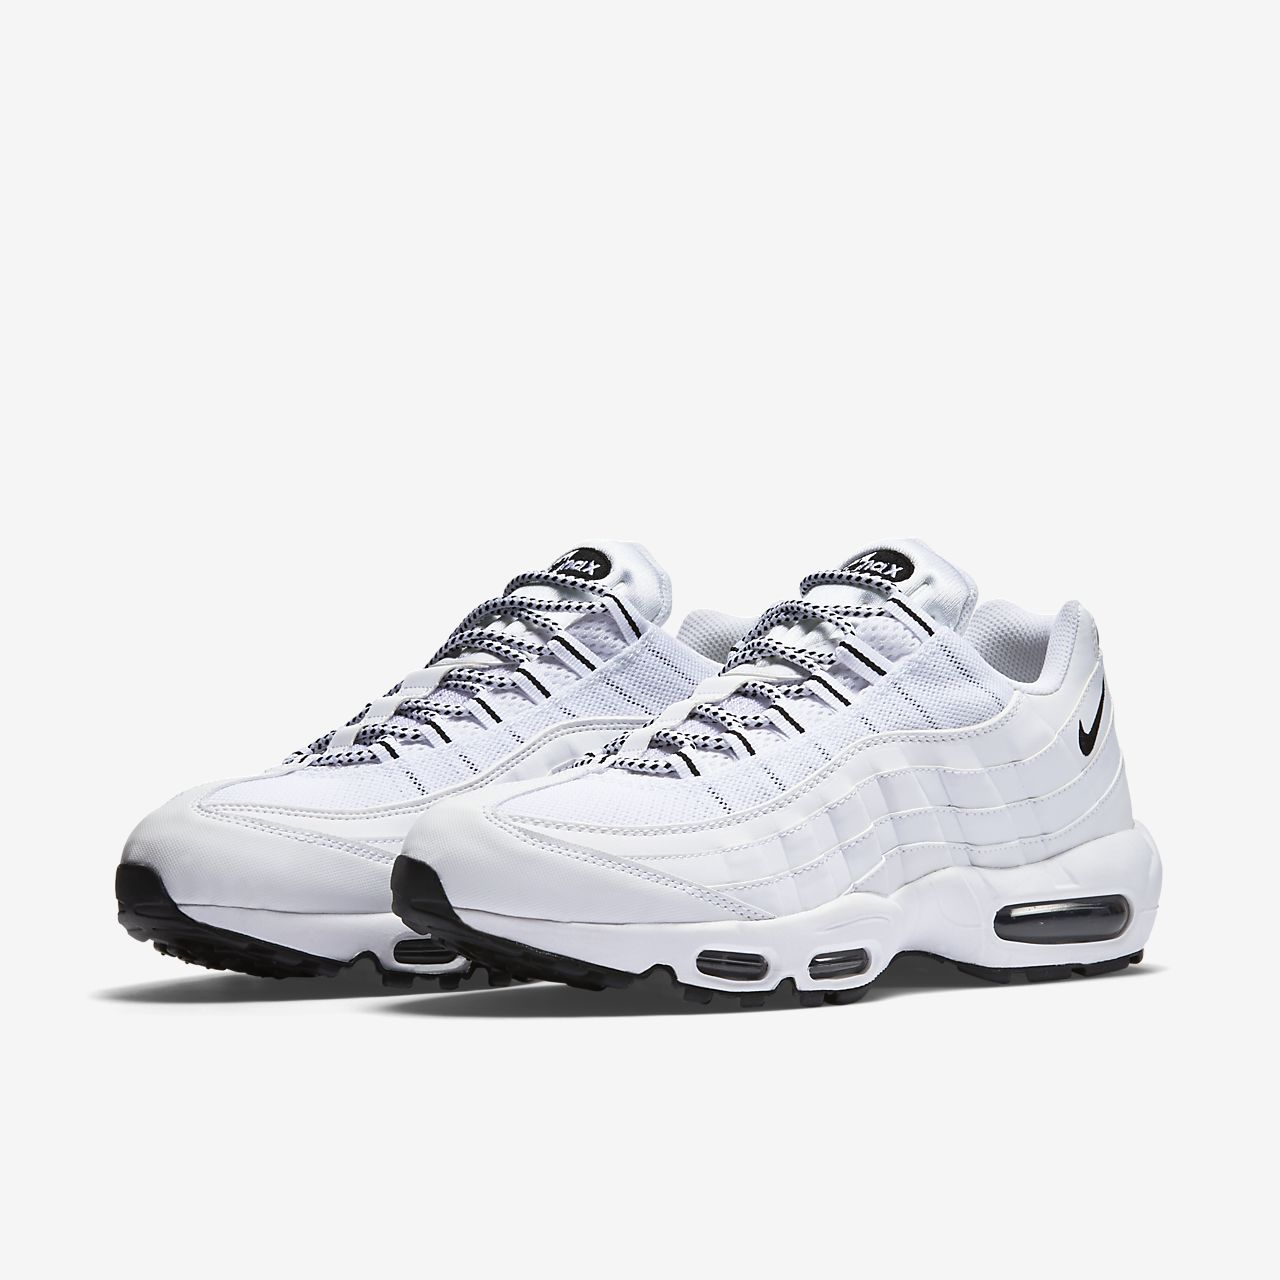 ... Nike Air Max 95 Men's Shoe